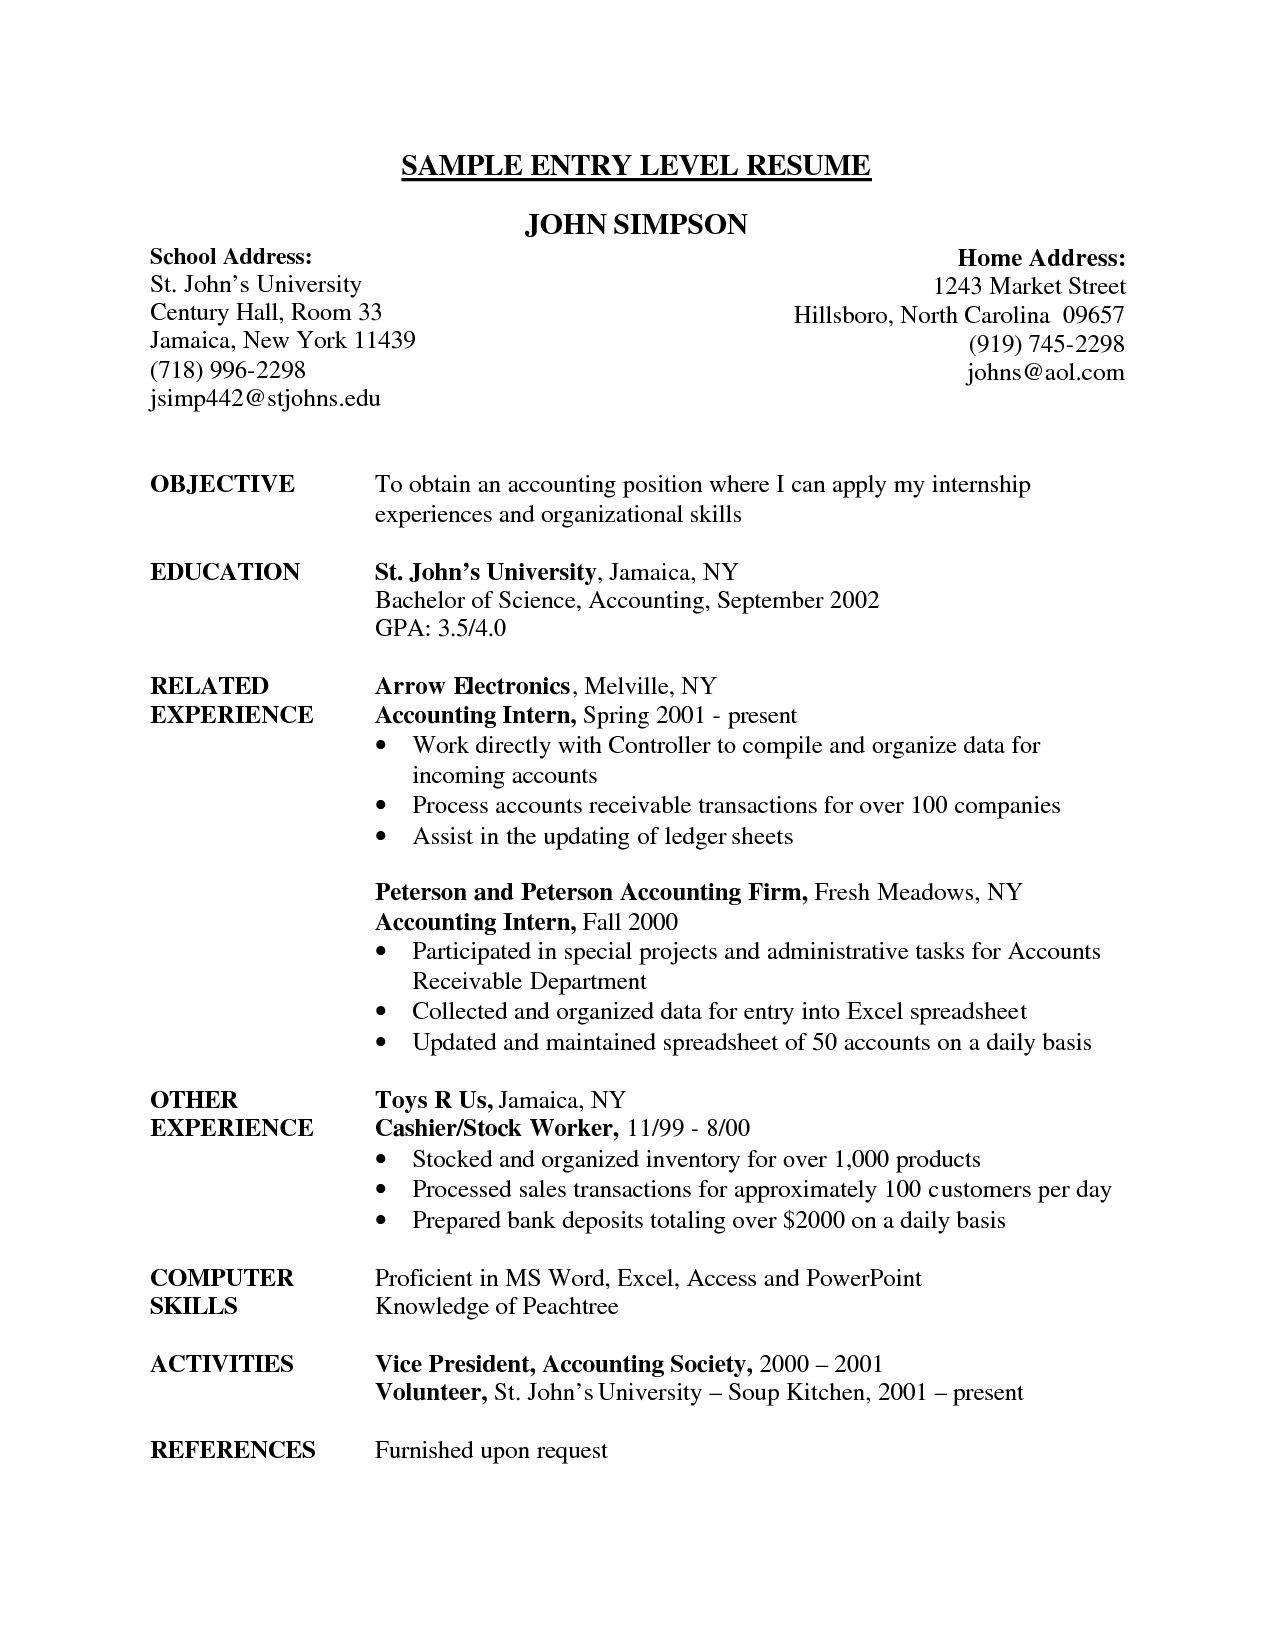 Resume Entry Level Template Endearing Resume Examples Entry Level  Resume Examples  Pinterest  Resume .